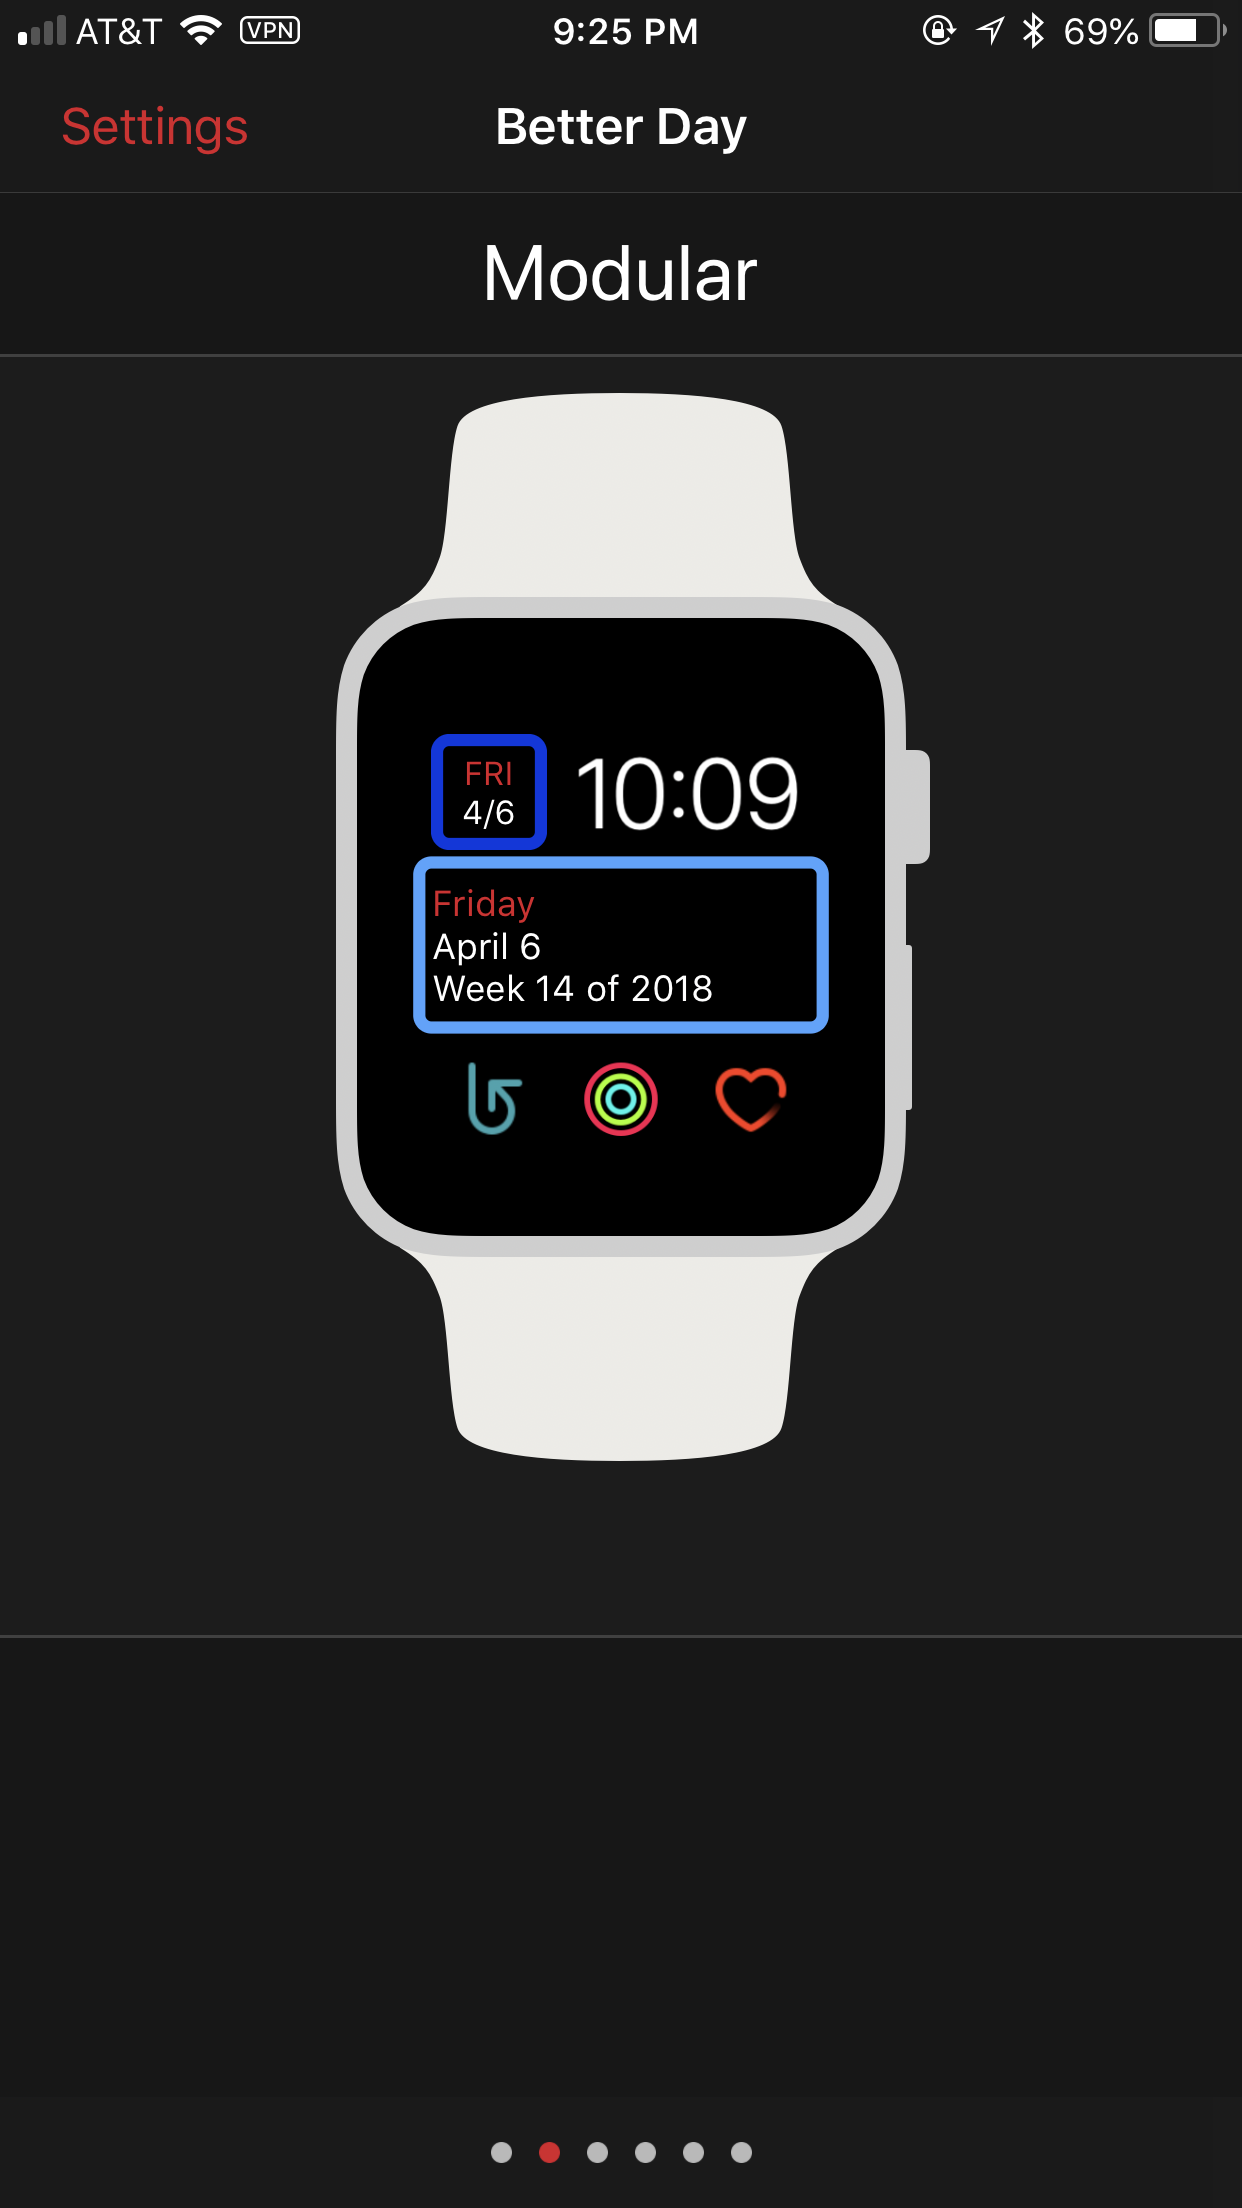 screenshot: the configurator displaying the modular watch face with Better Day in the top left and centerpiece slots